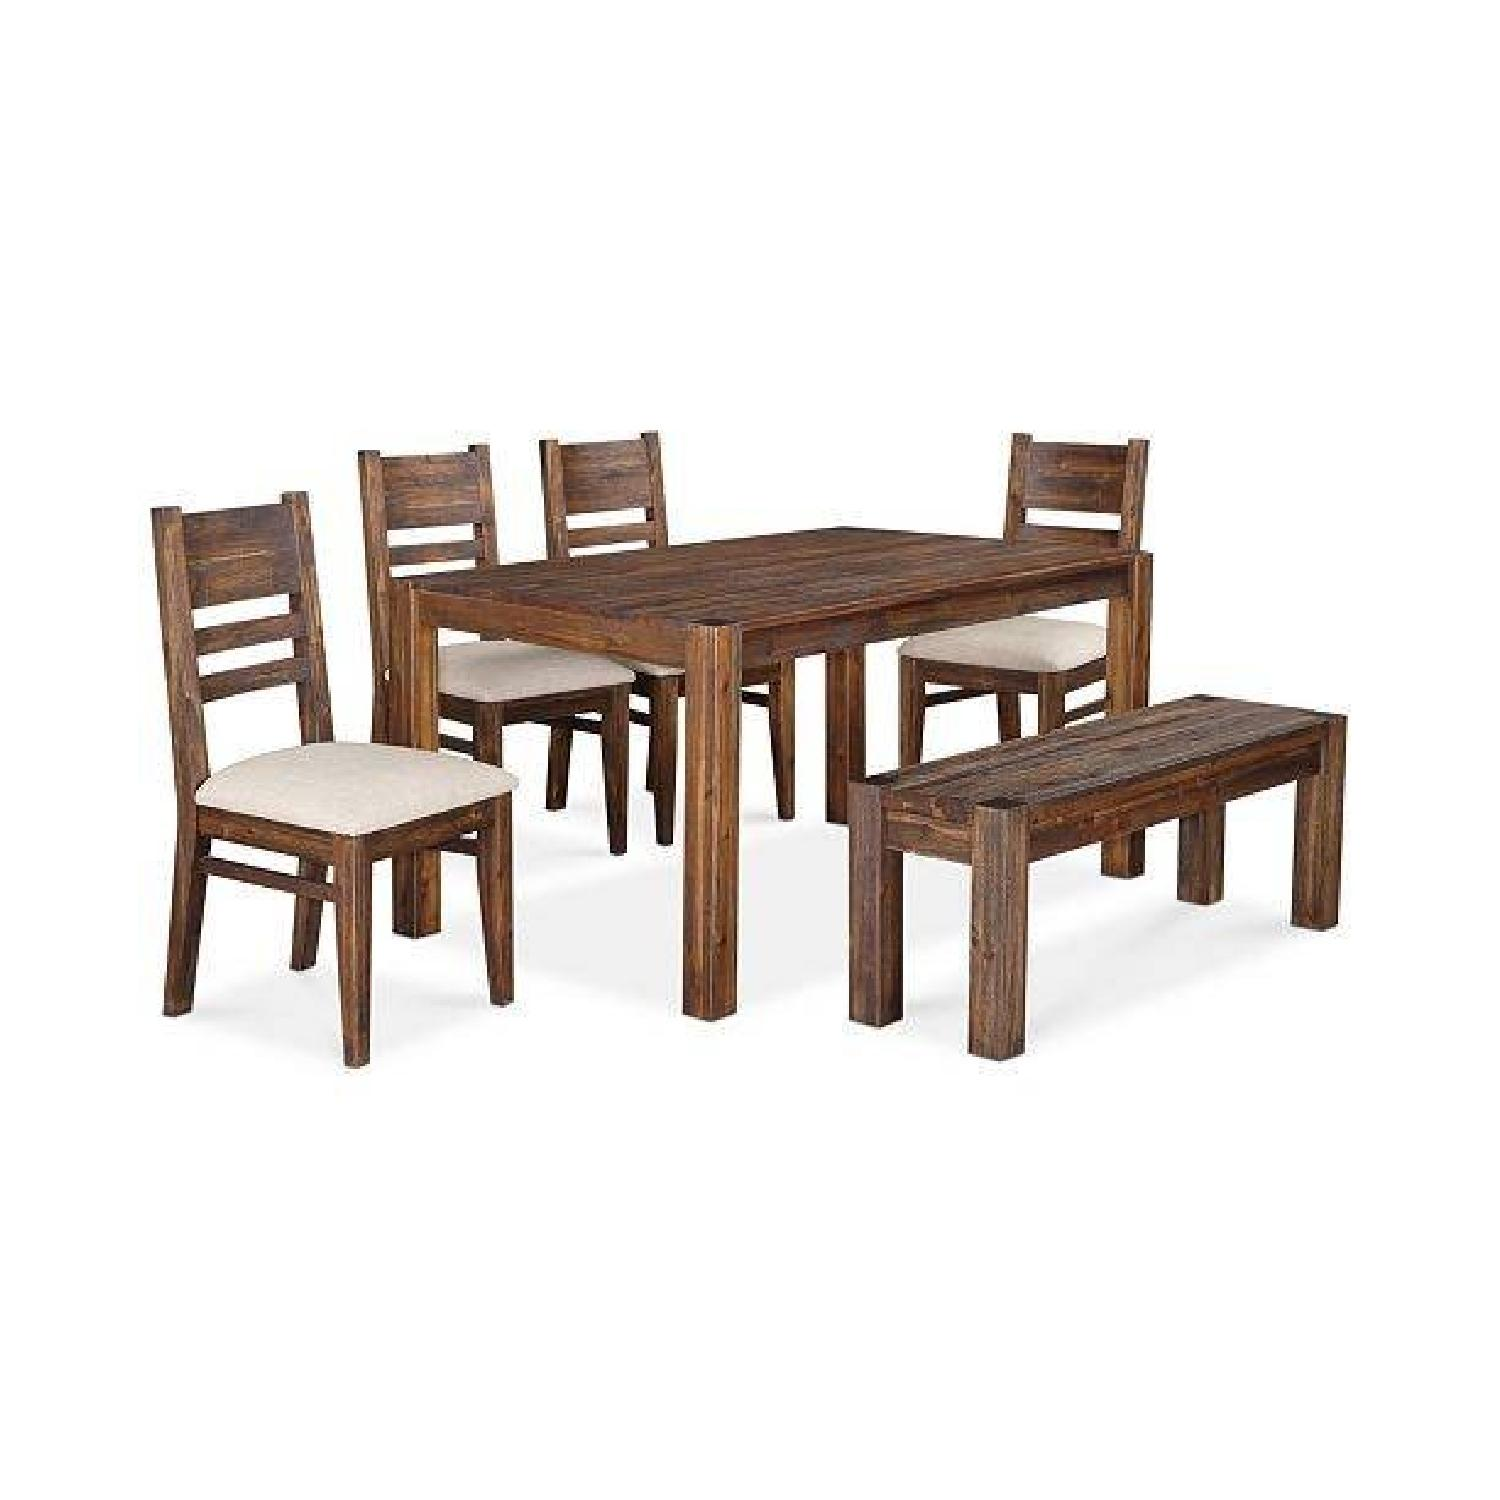 Macy's Avondale Dining Table w/ 4 Chairs & Bench